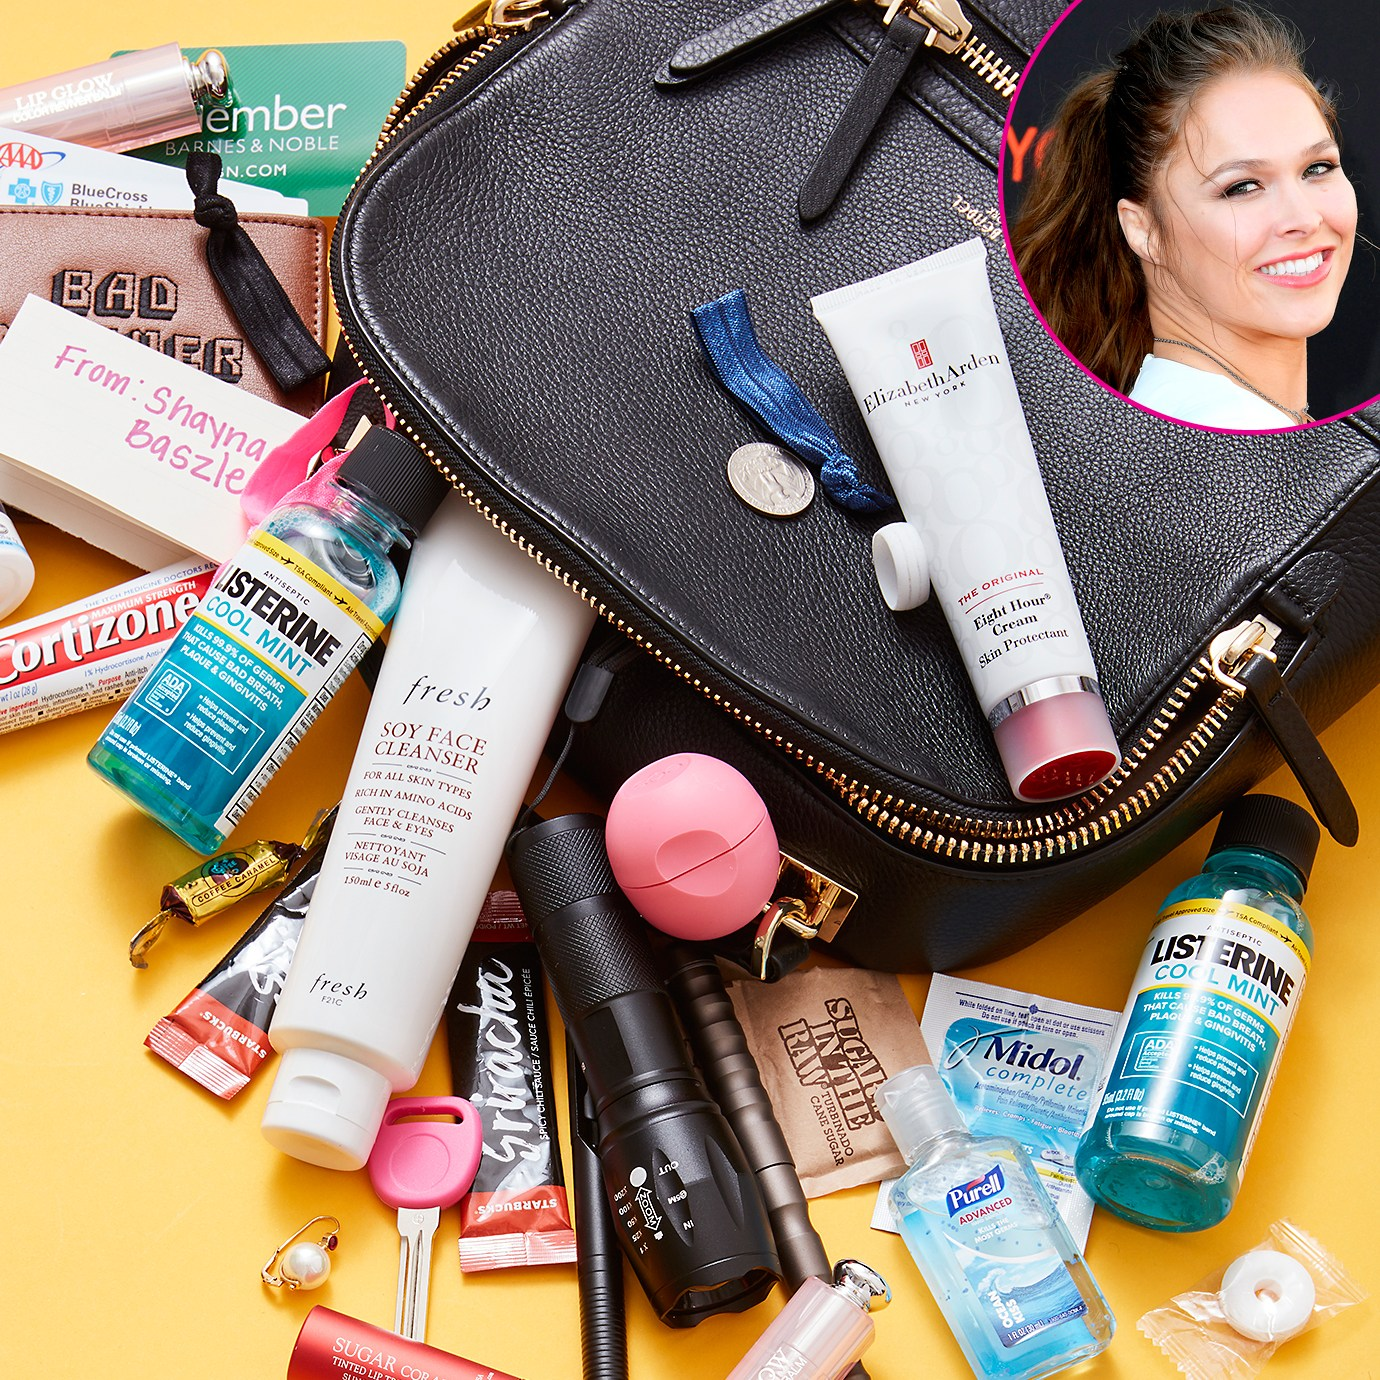 Ronda-Rousey-What's-in-My-Bag-promo